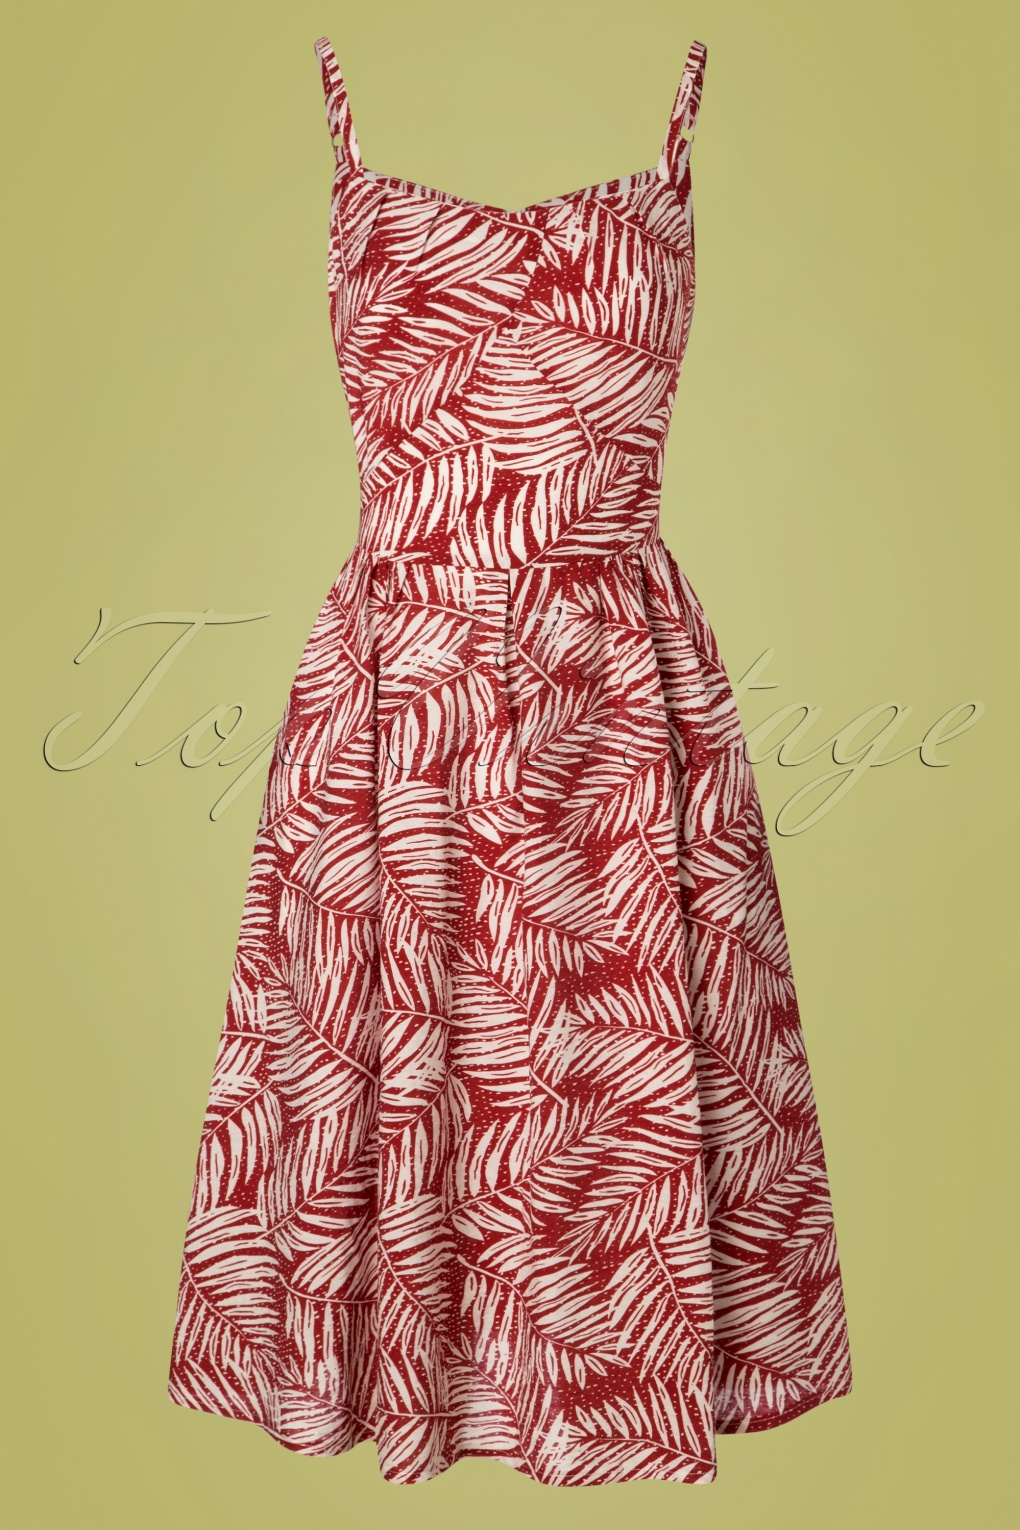 Retro Tiki, Tropical, Hawaiian Style Dresses 50s Palm Days Dress in Burgundy £46.71 AT vintagedancer.com